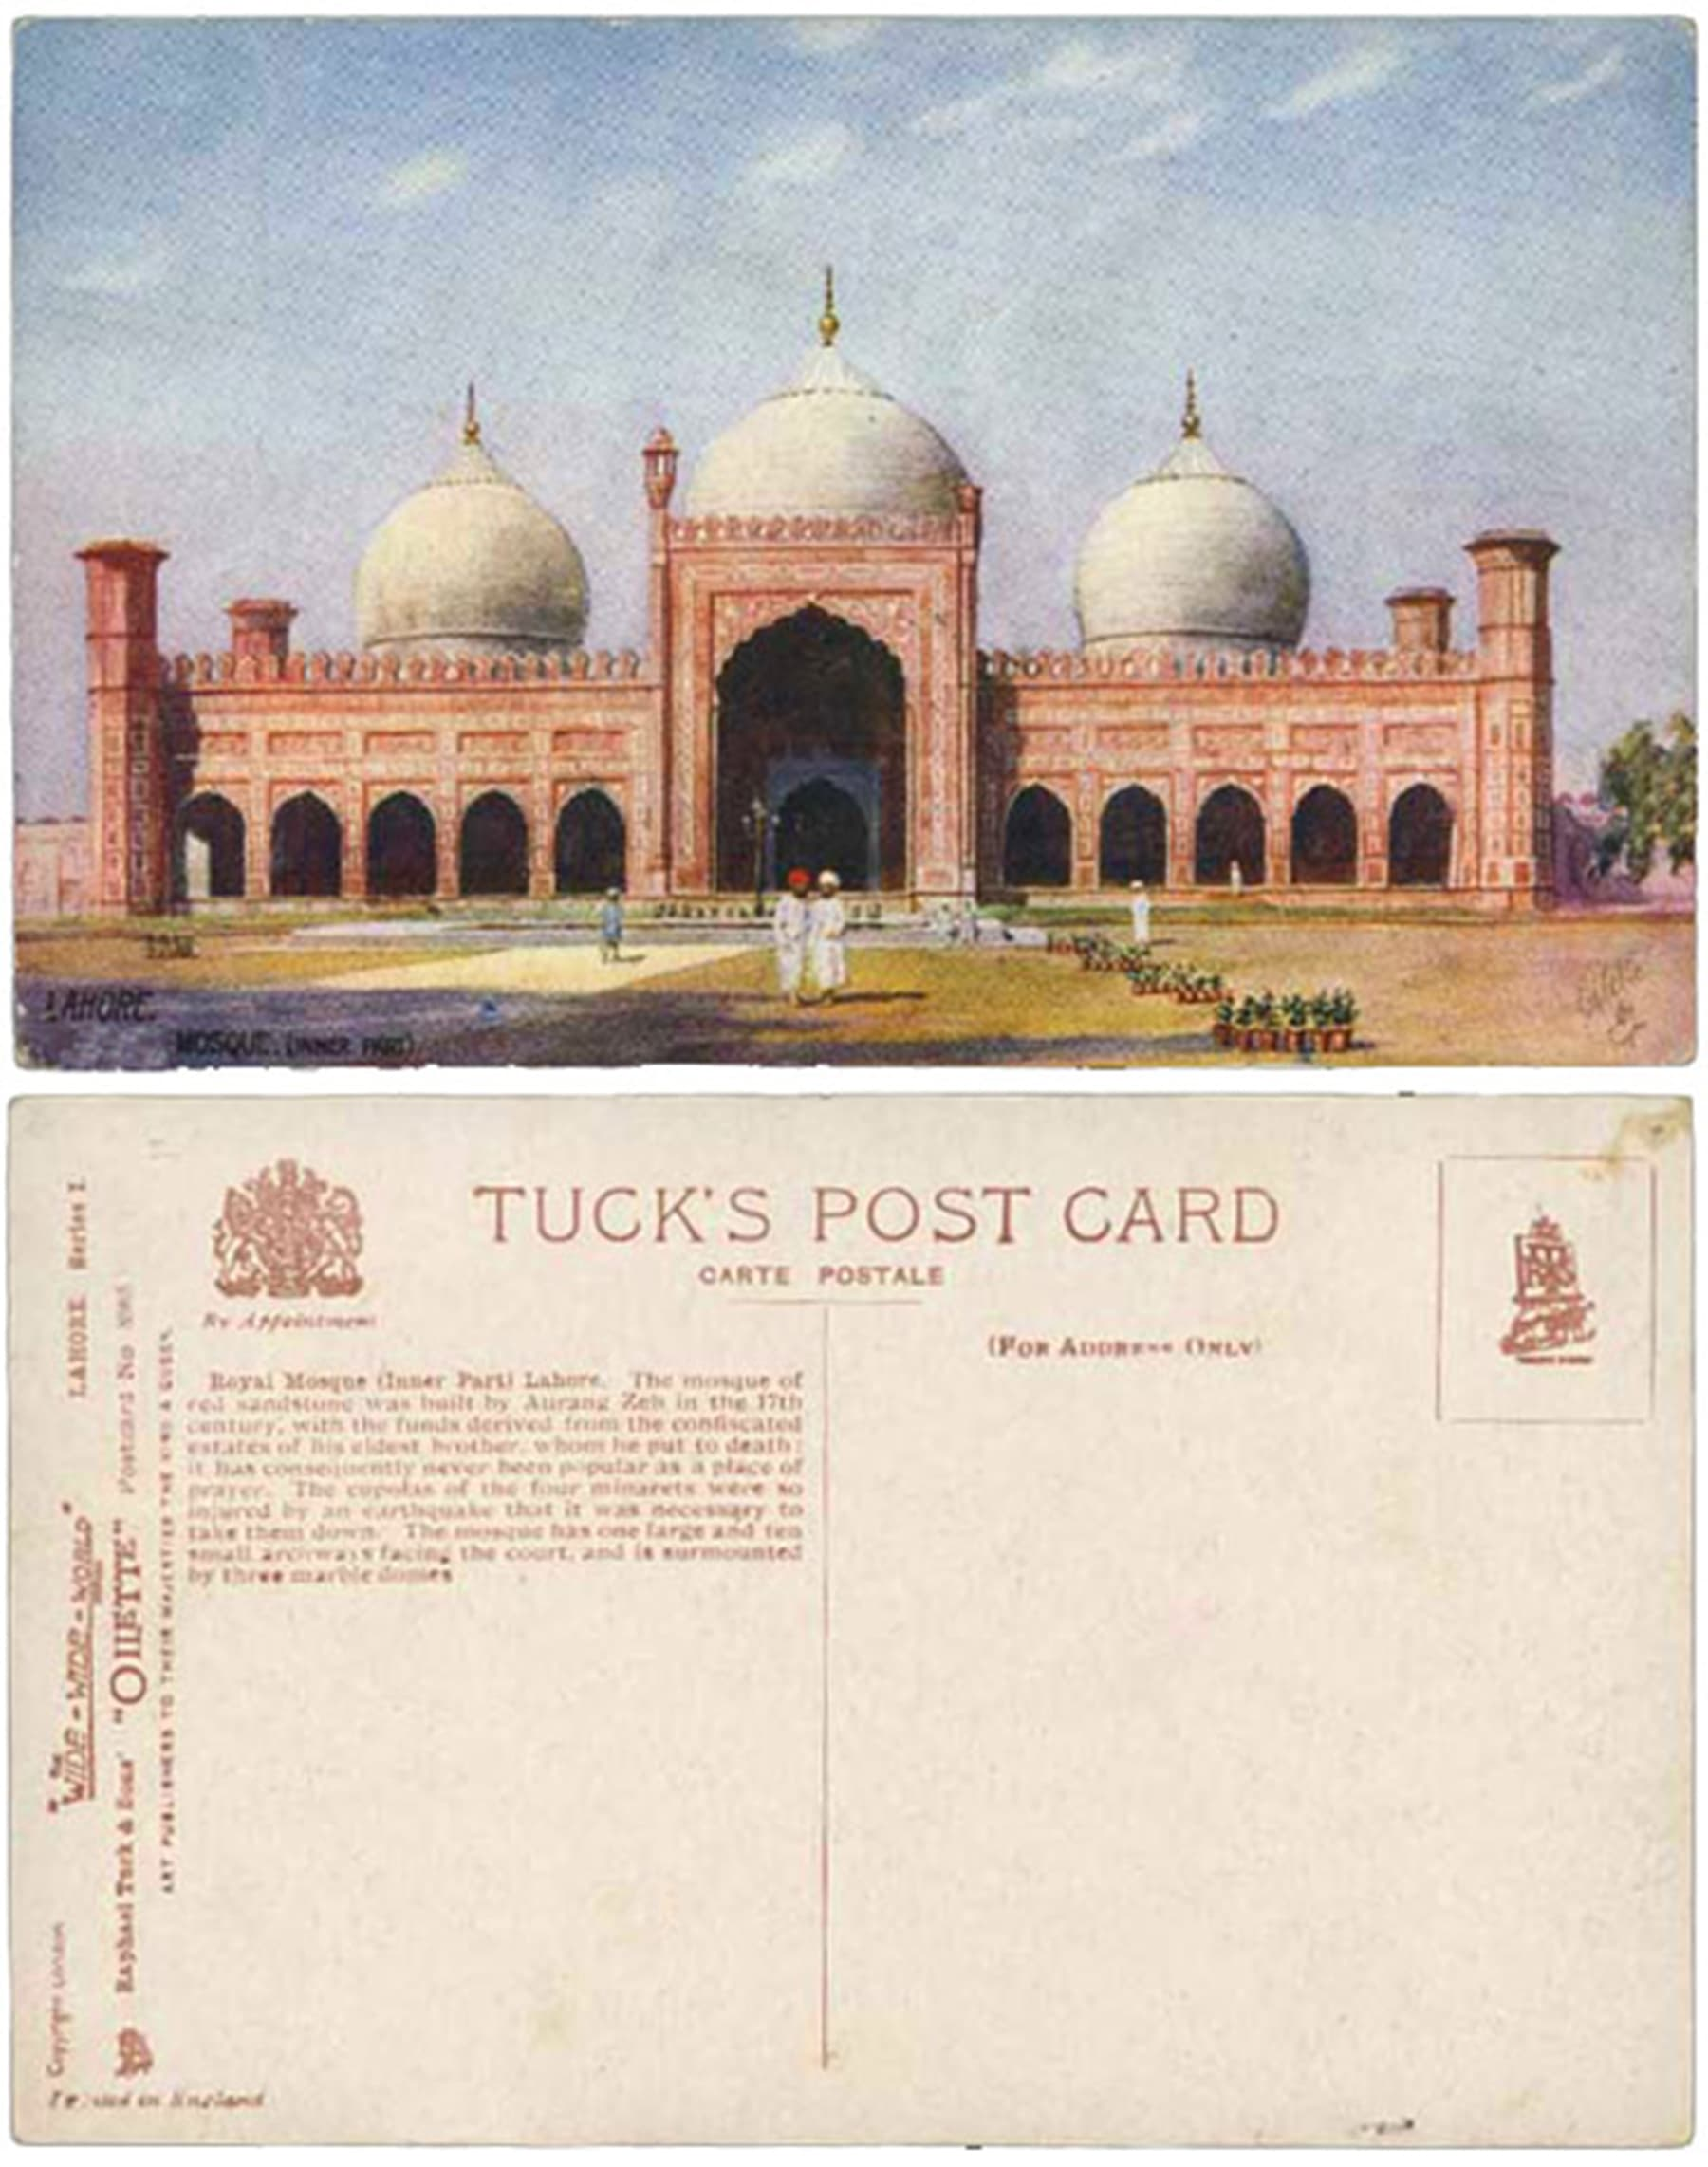 A post card originally produced by Raphael Tuck, London. From the collection of Tasveer Ghar.